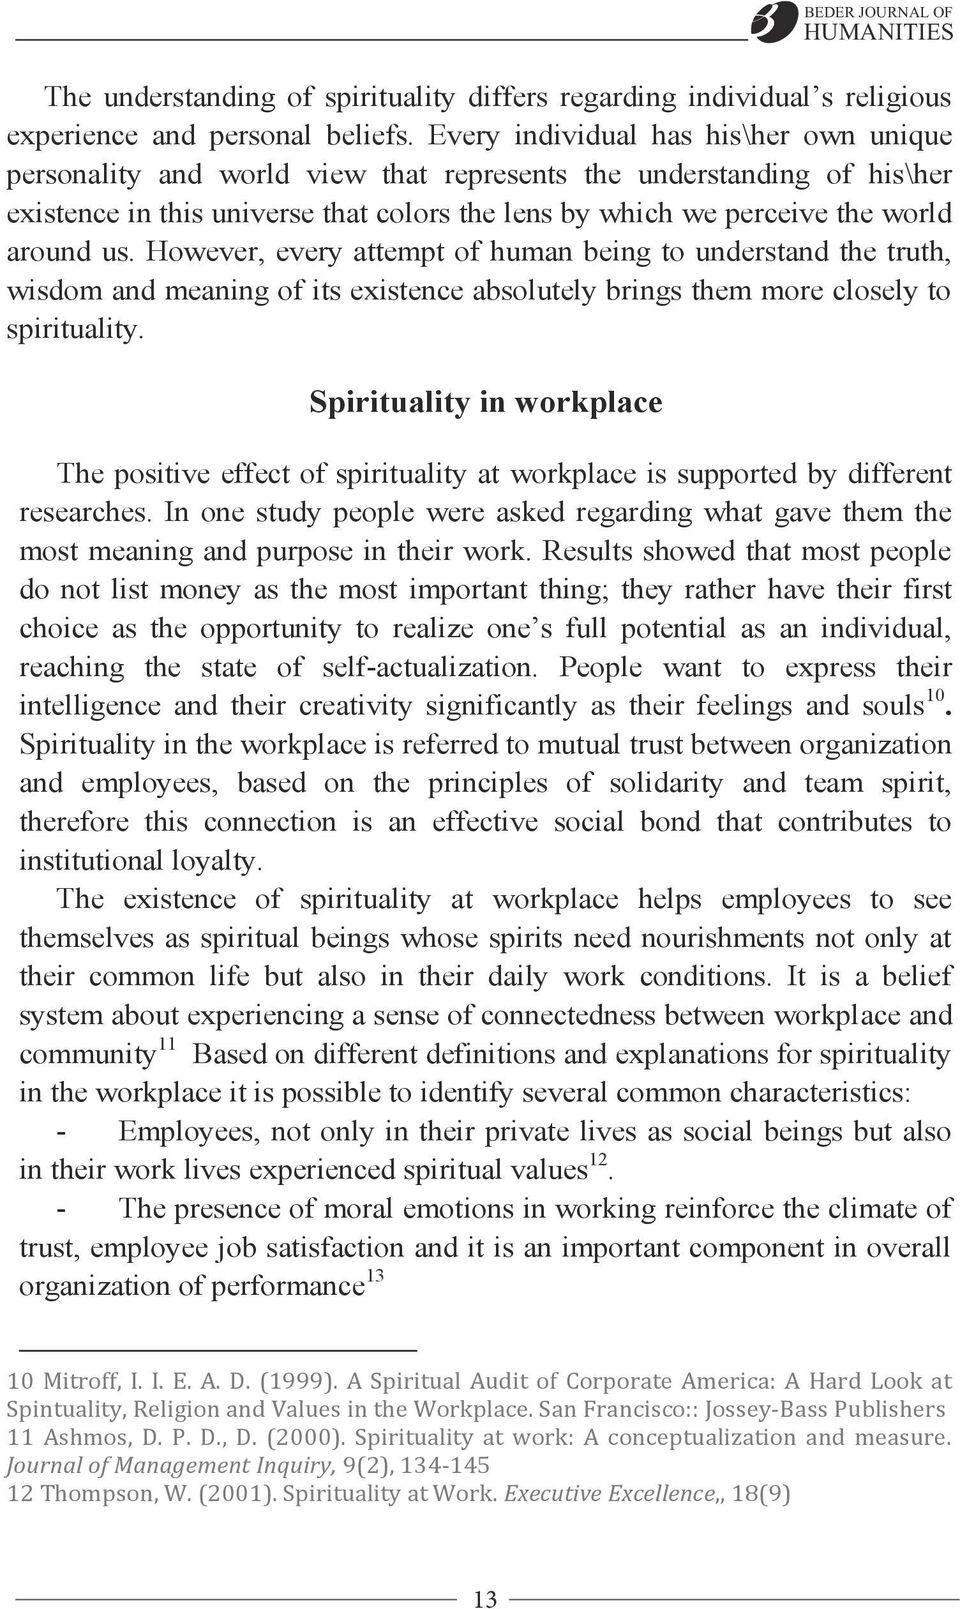 us. However, every attempt of human being to understand the truth, wisdom and meaning of its existence absolutely brings them more closely to spirituality. Spirituality in workplace LIMA